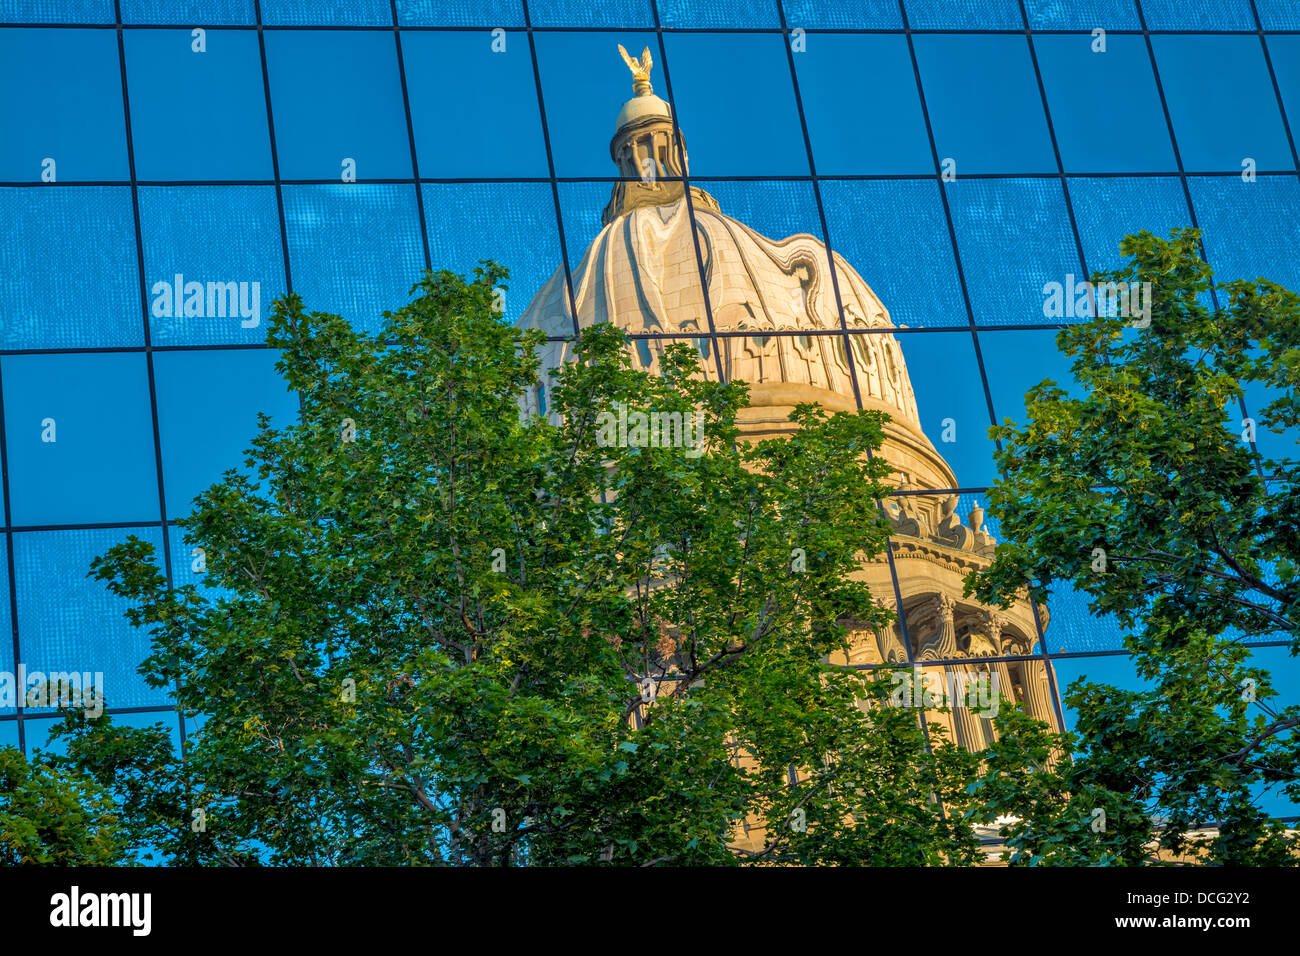 Reflection of the state capital shows a warped image - Stock Image